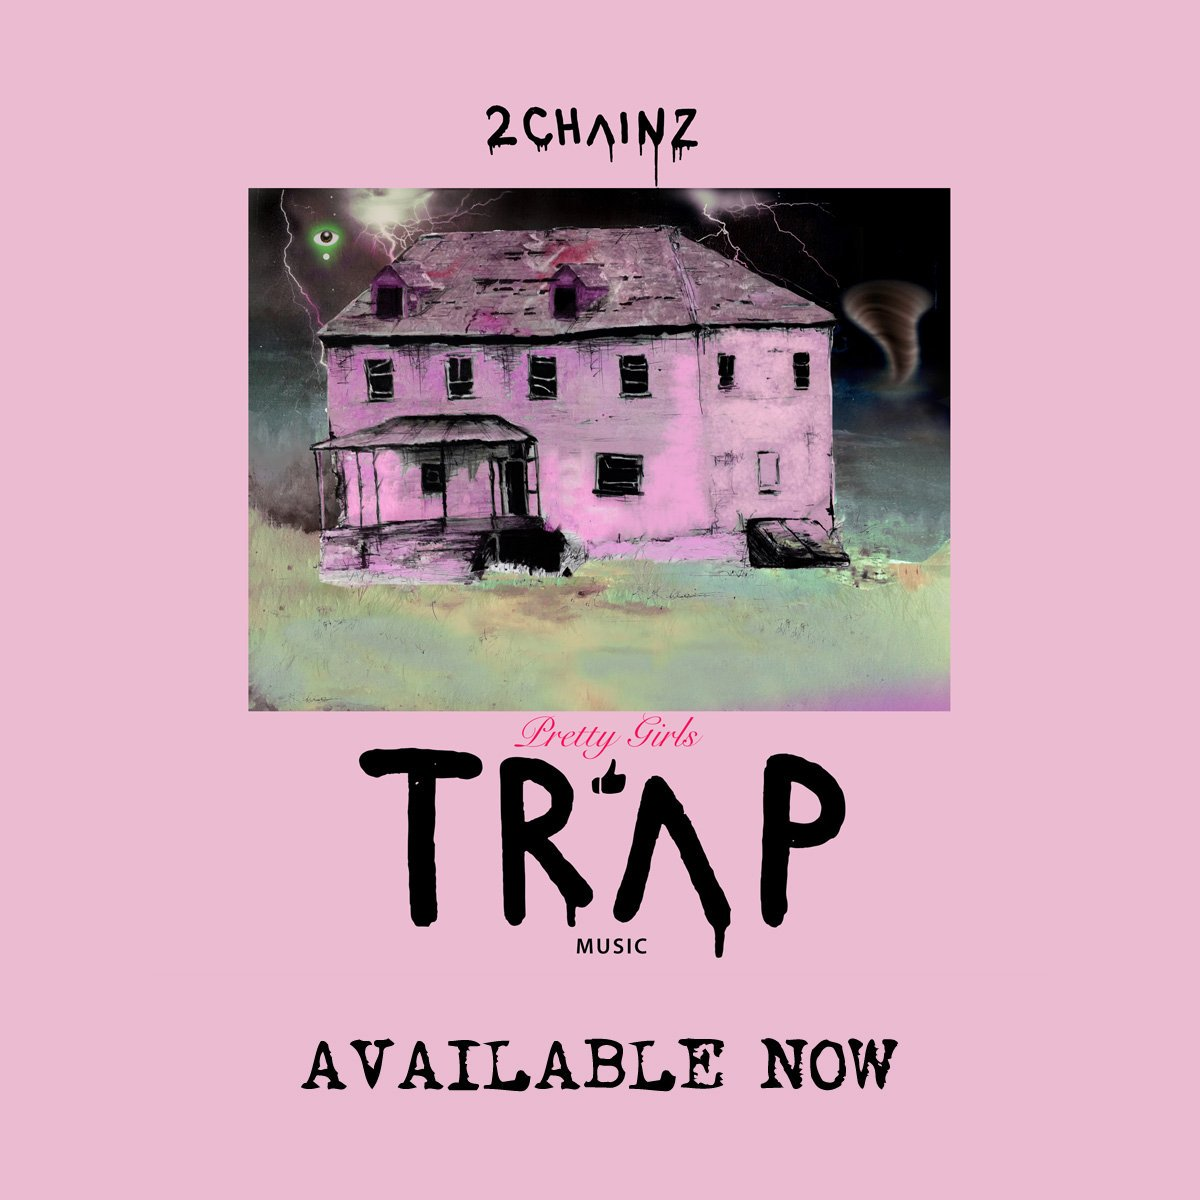 RT @BigSean: Congrats to my brother @2chainz #PrettyGirlsLikeTrapMusic https://t.co/F7cQDimqTw https://t.co/eq5Lw154S0